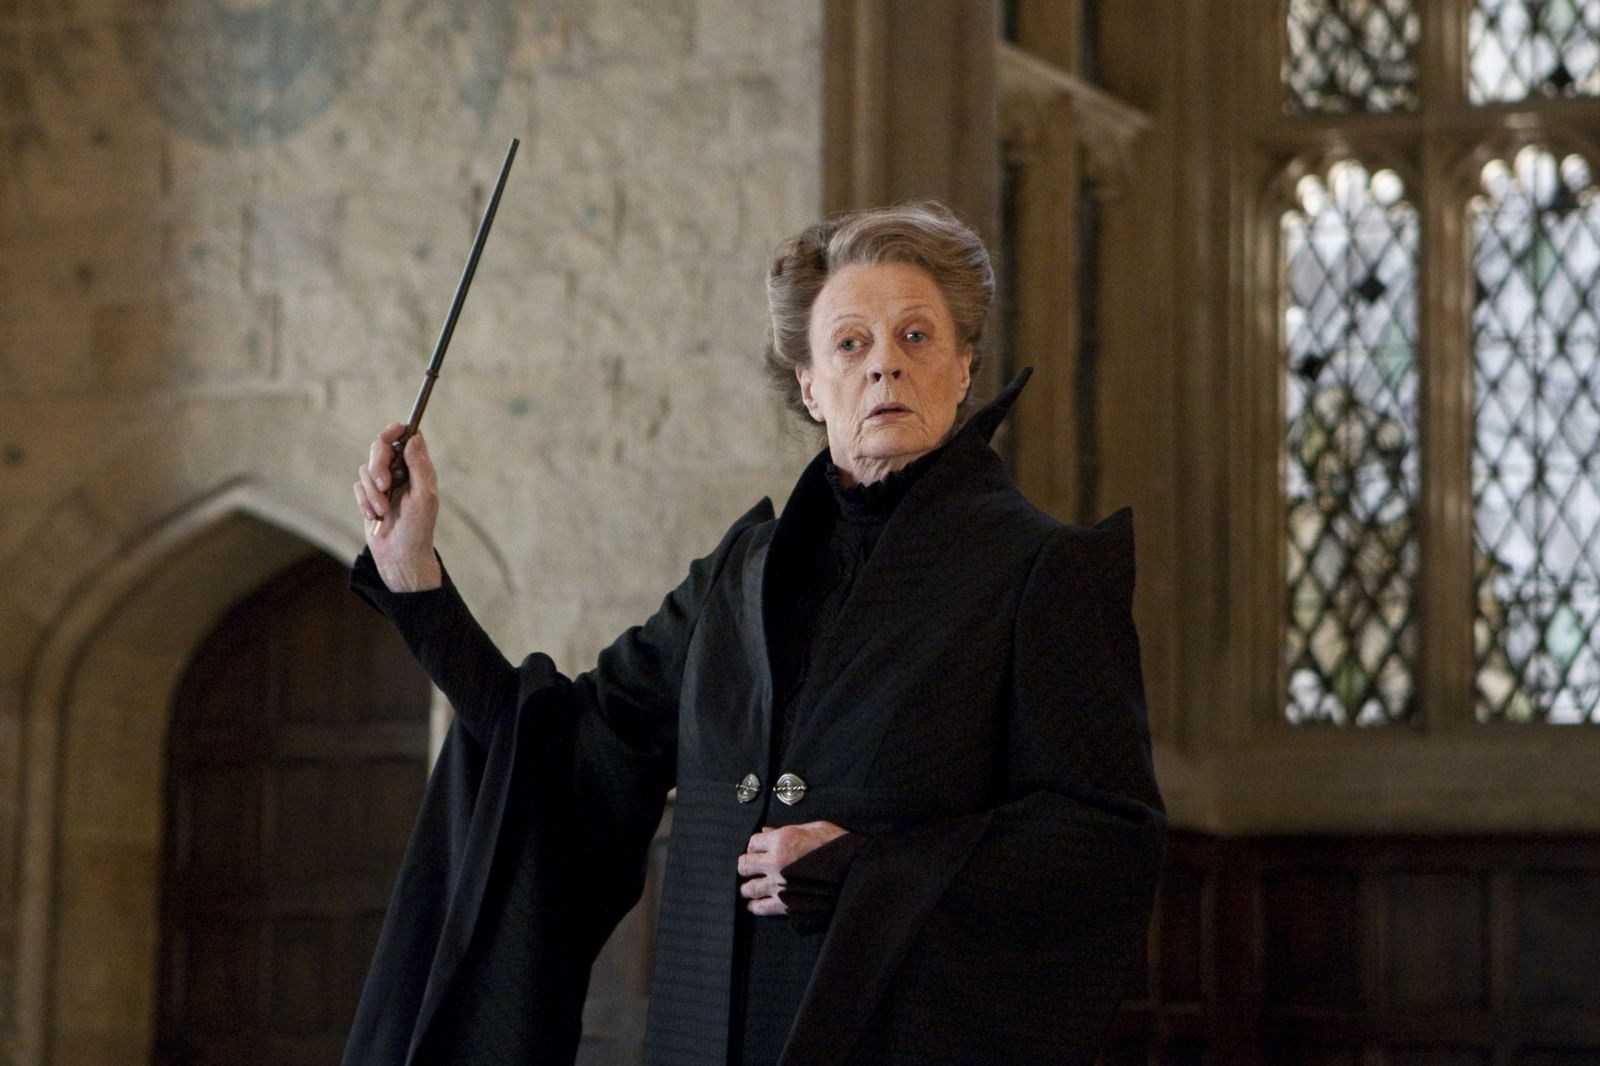 Professor Mcgonagall images Professor Mcgonagall HD wallpaper and 1600x1066